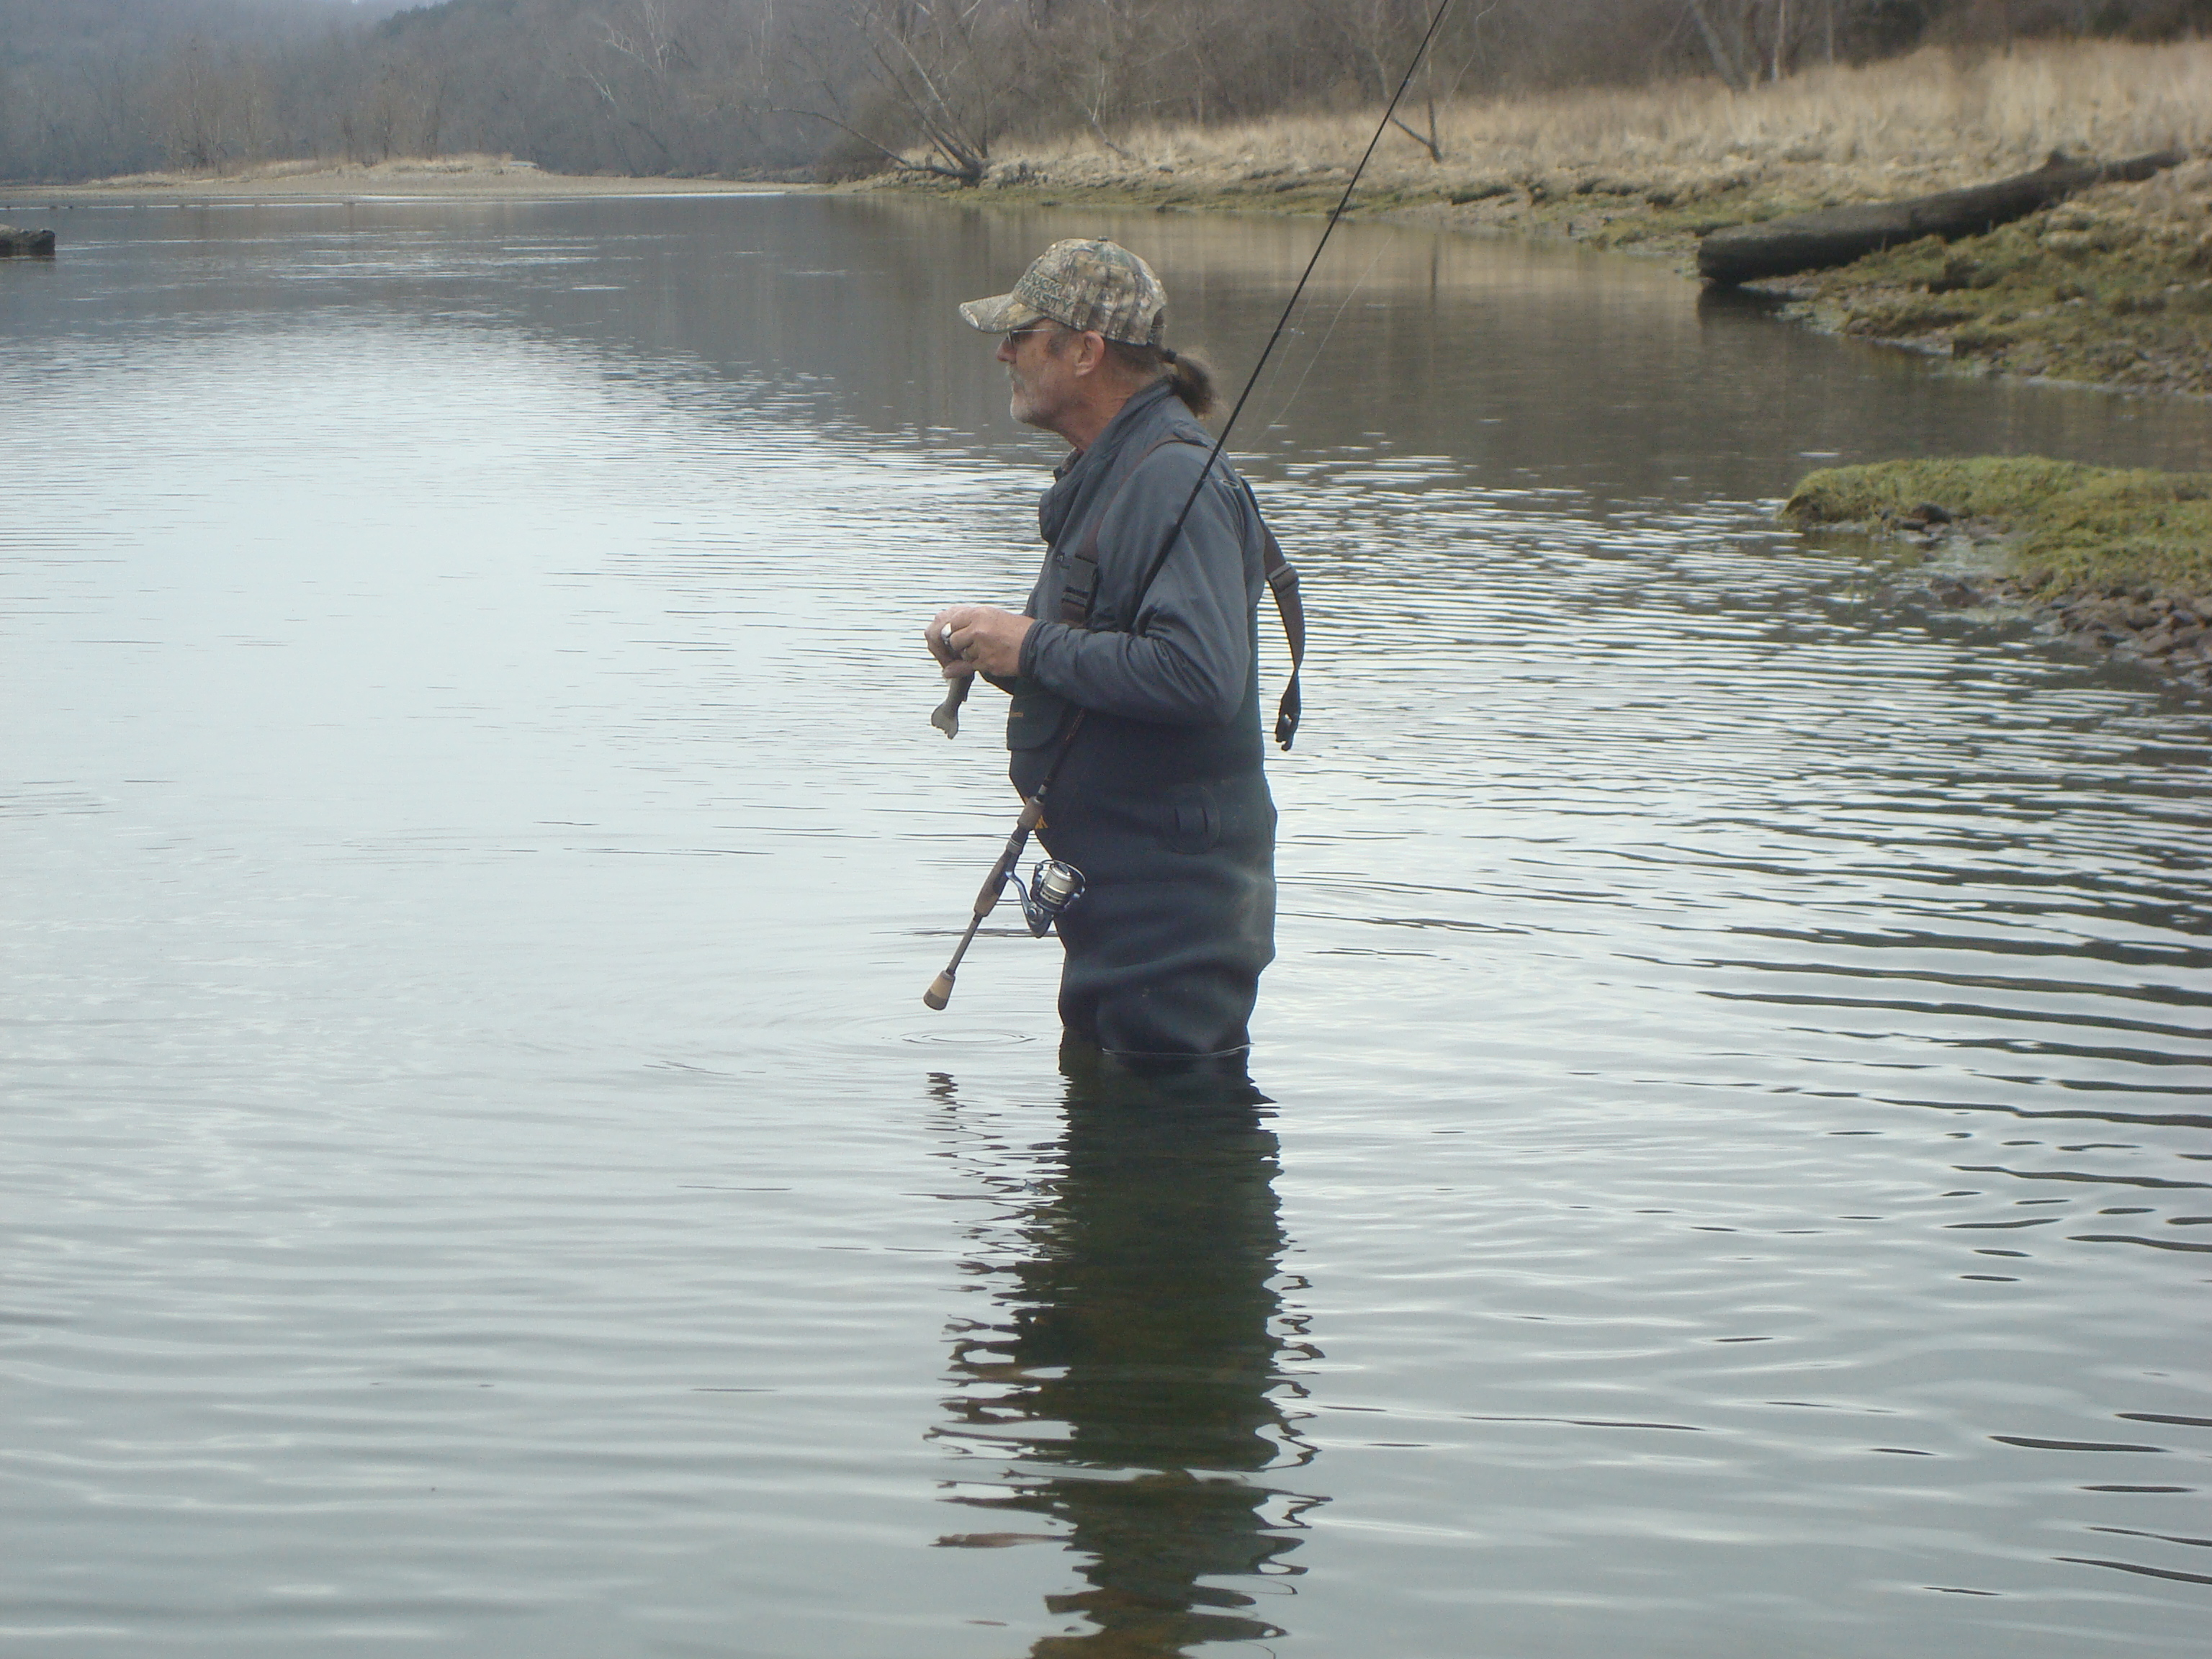 Lake of the ozarks fishing report november 2012 emails for Fishing report lake of the ozarks